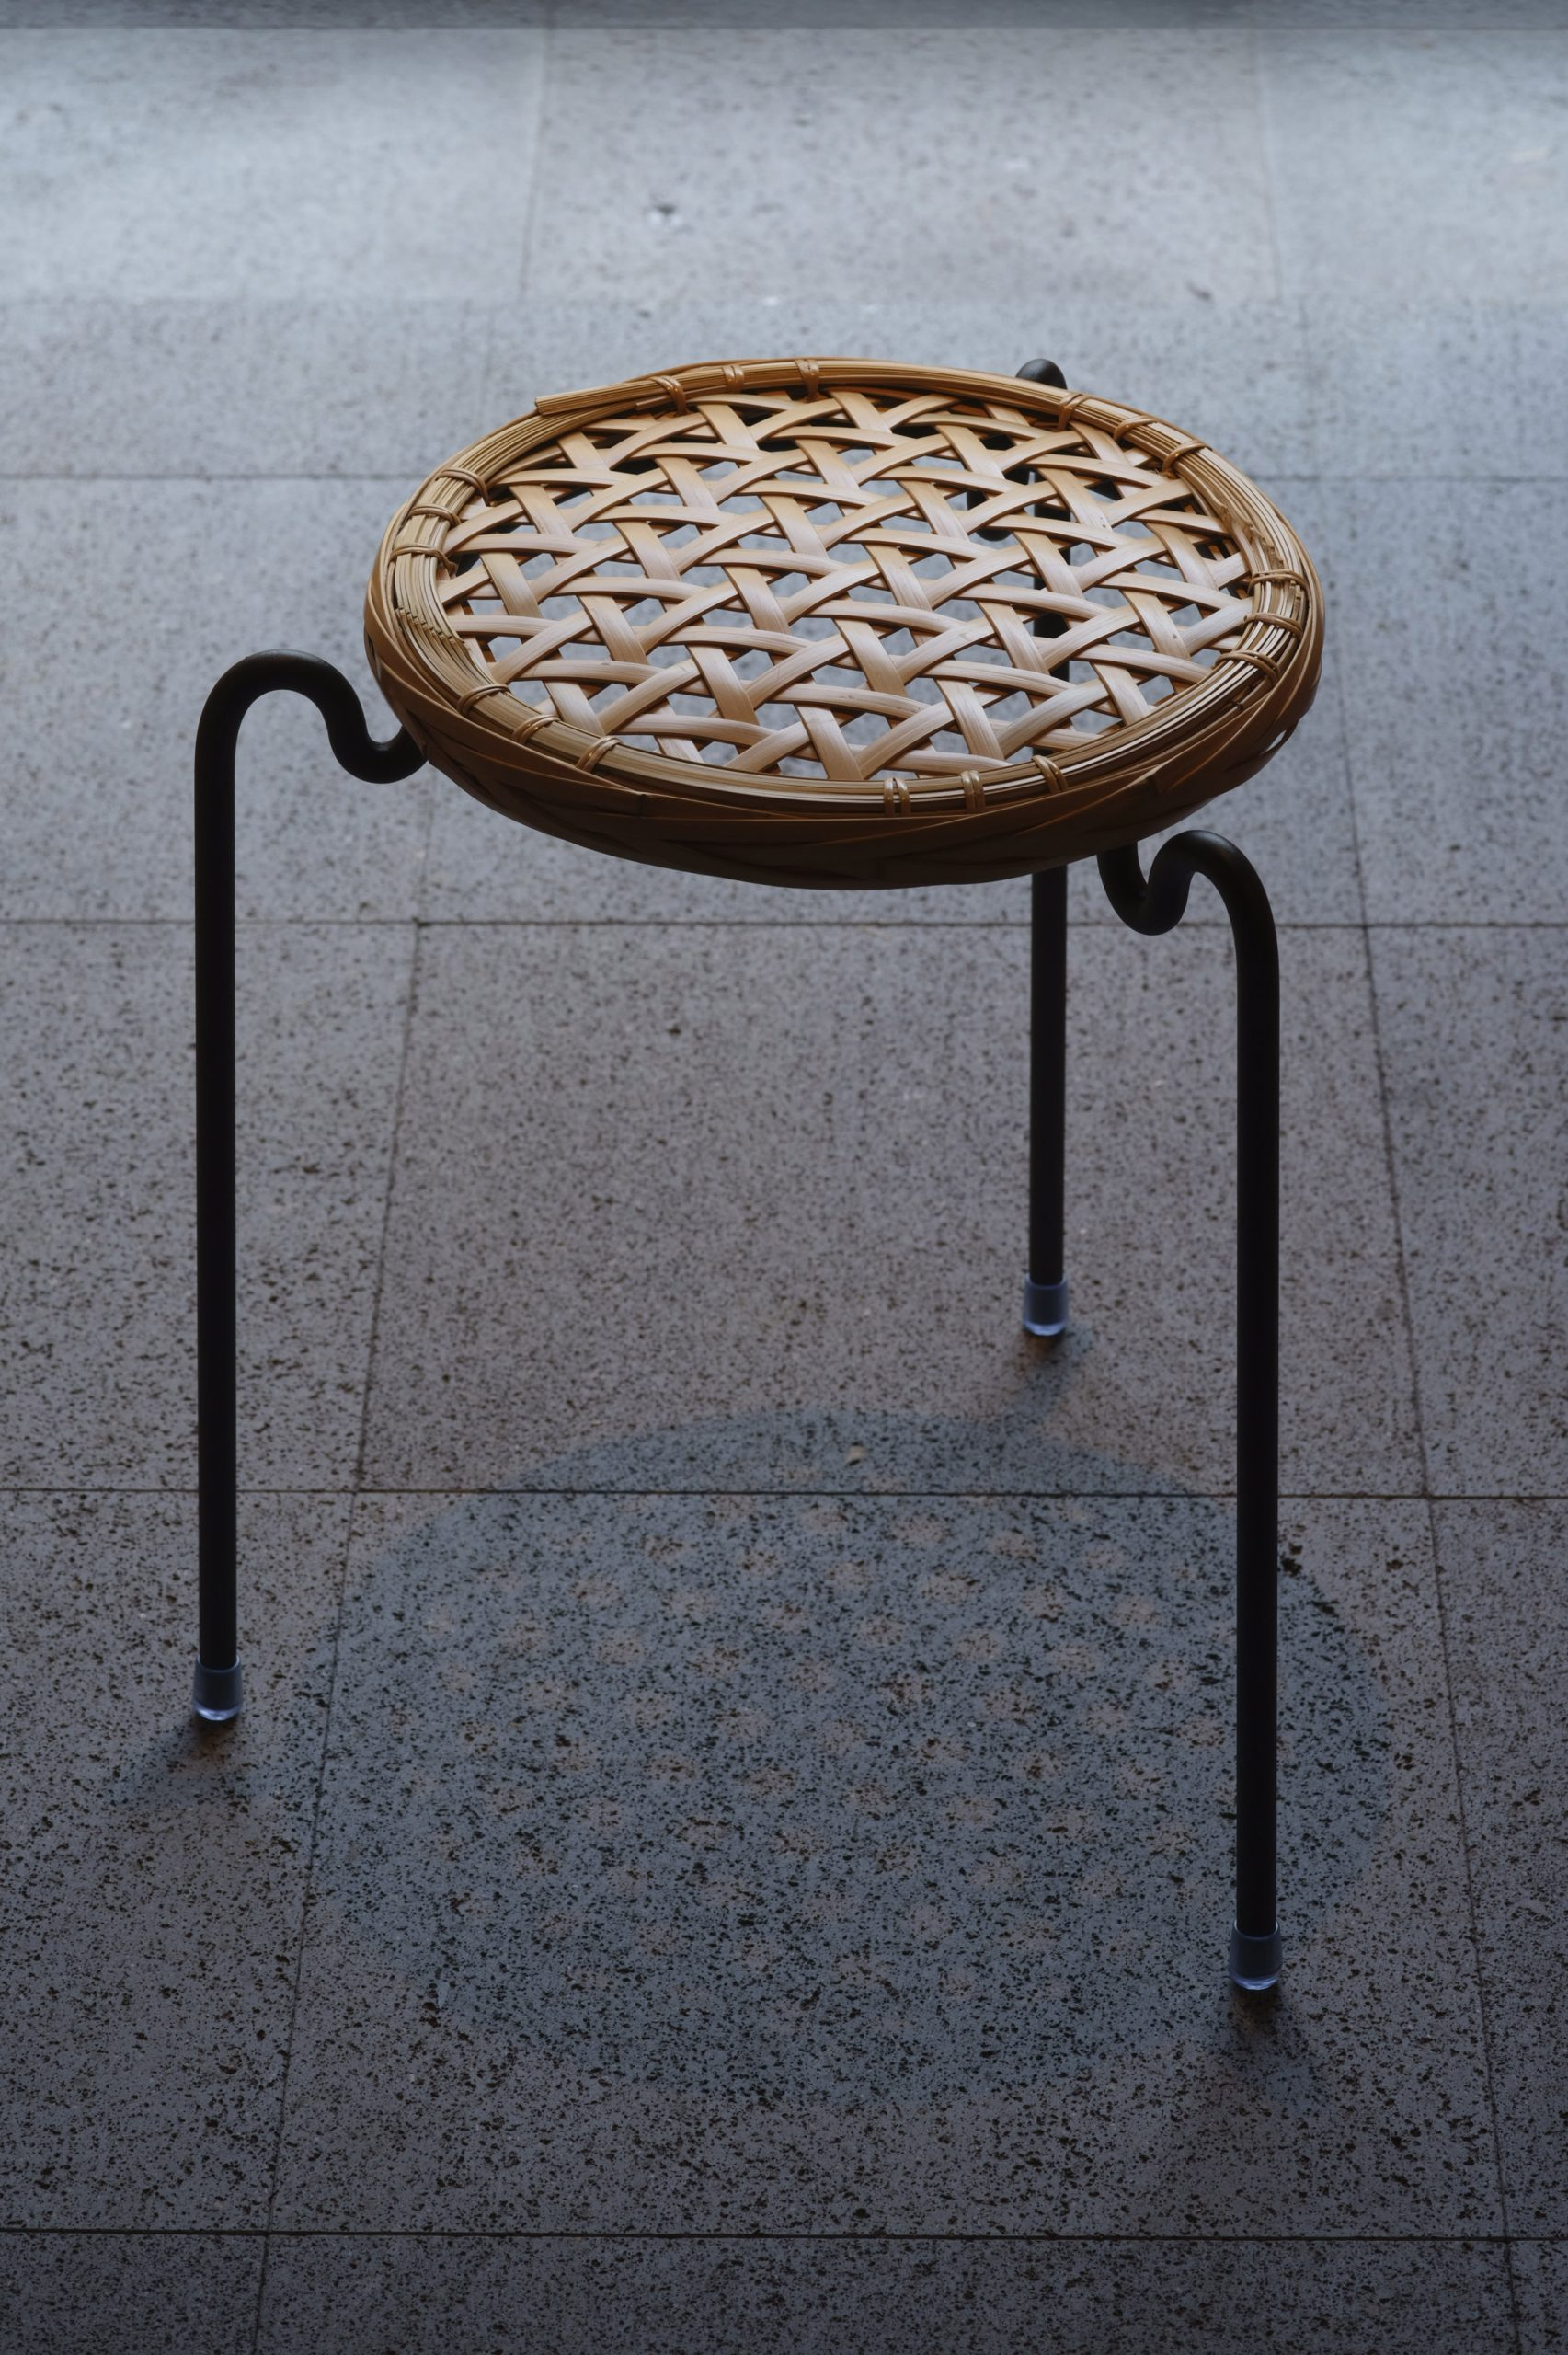 Vegahouse designs Zalue stool with removable woven bamboo seat